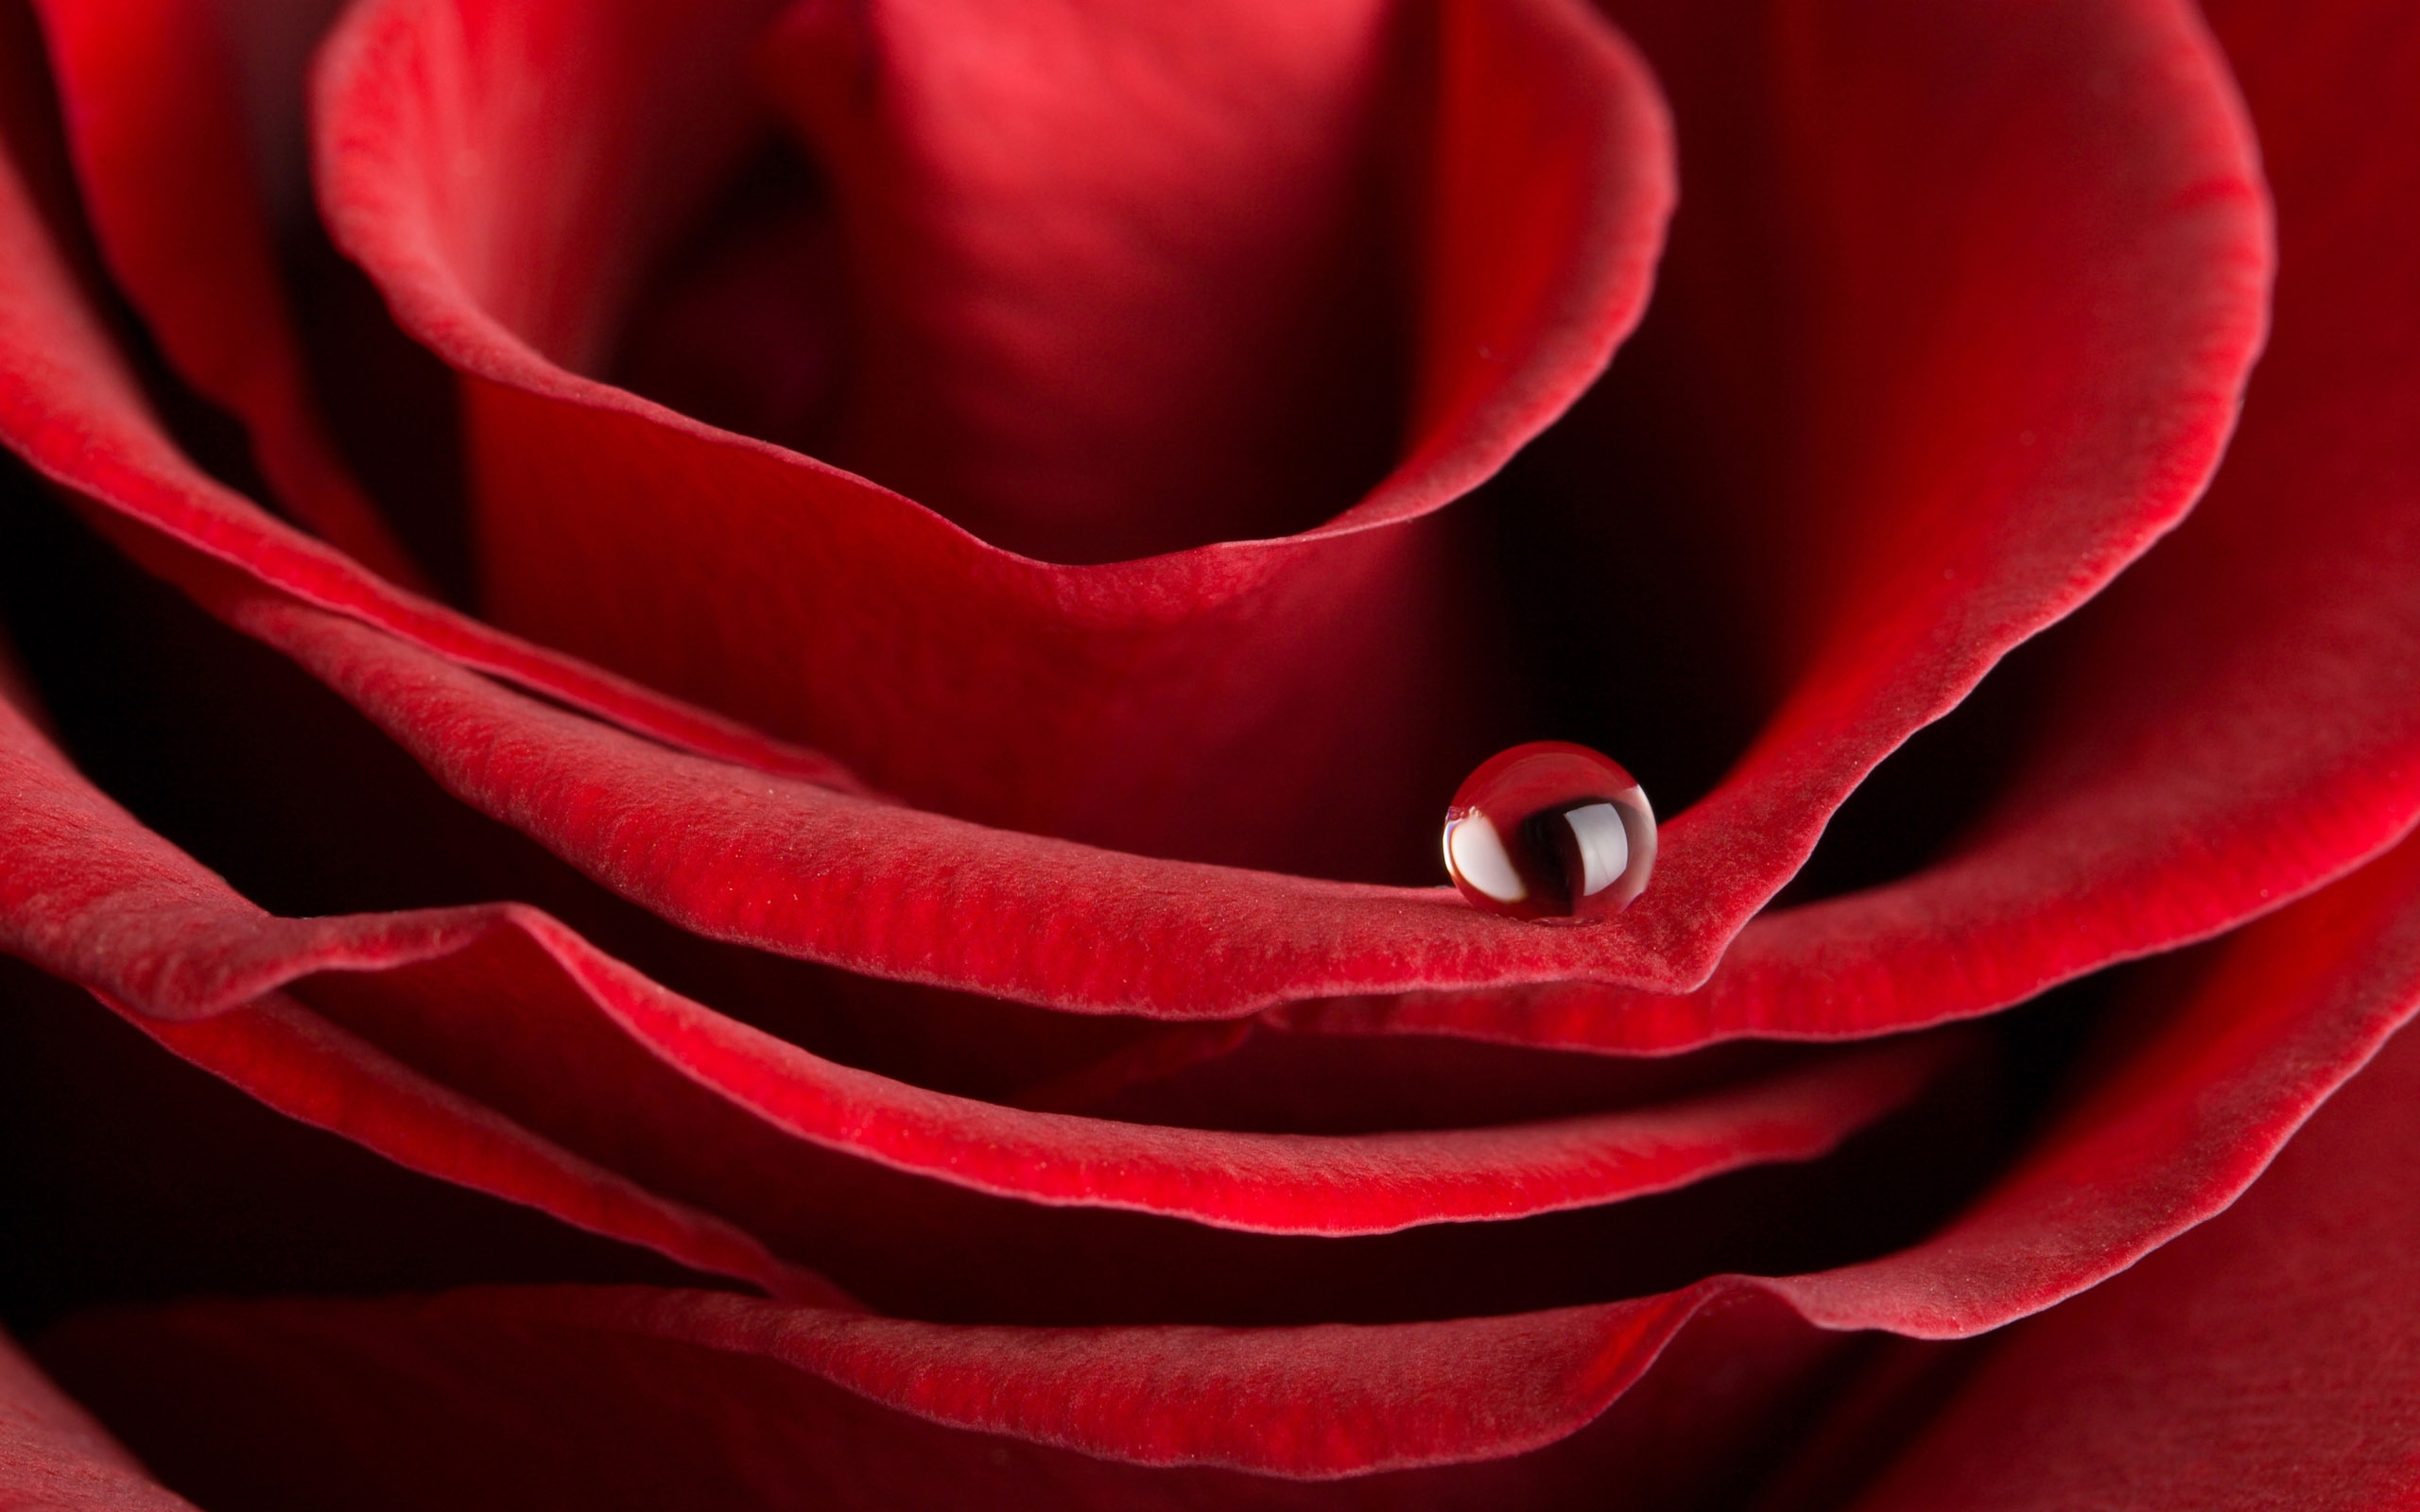 25813 download wallpaper Plants, Flowers, Roses, Drops screensavers and pictures for free